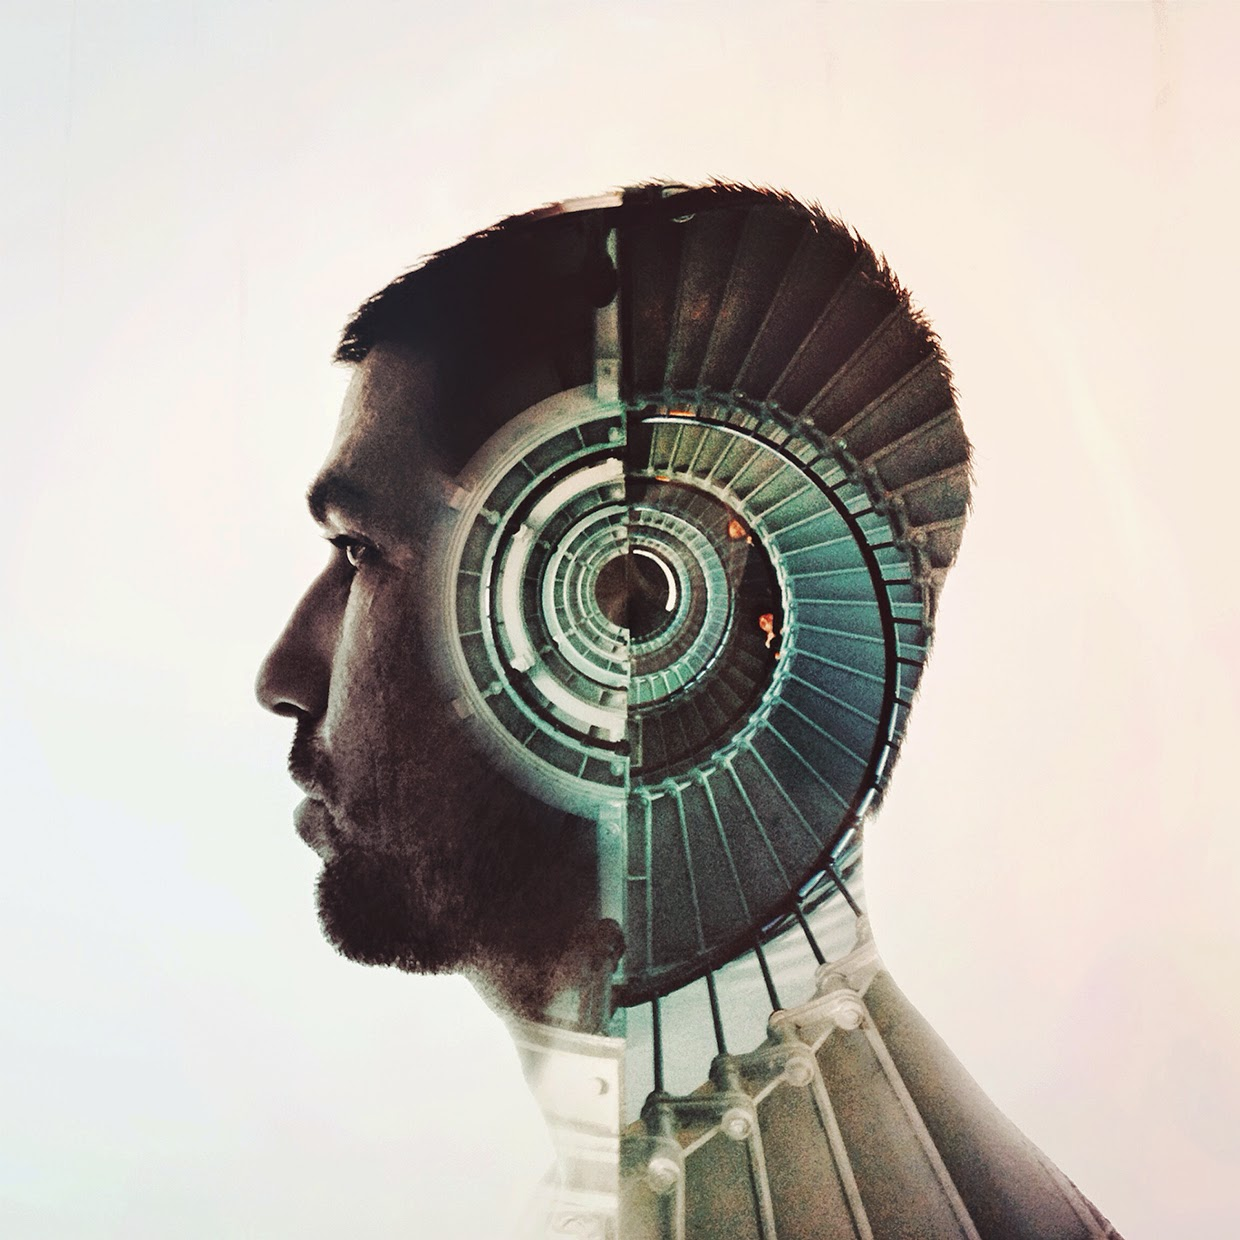 21-Brandon-Kidwell-Stories-in-Double-Exposure-Portrait-Photographs-www-designstack-co